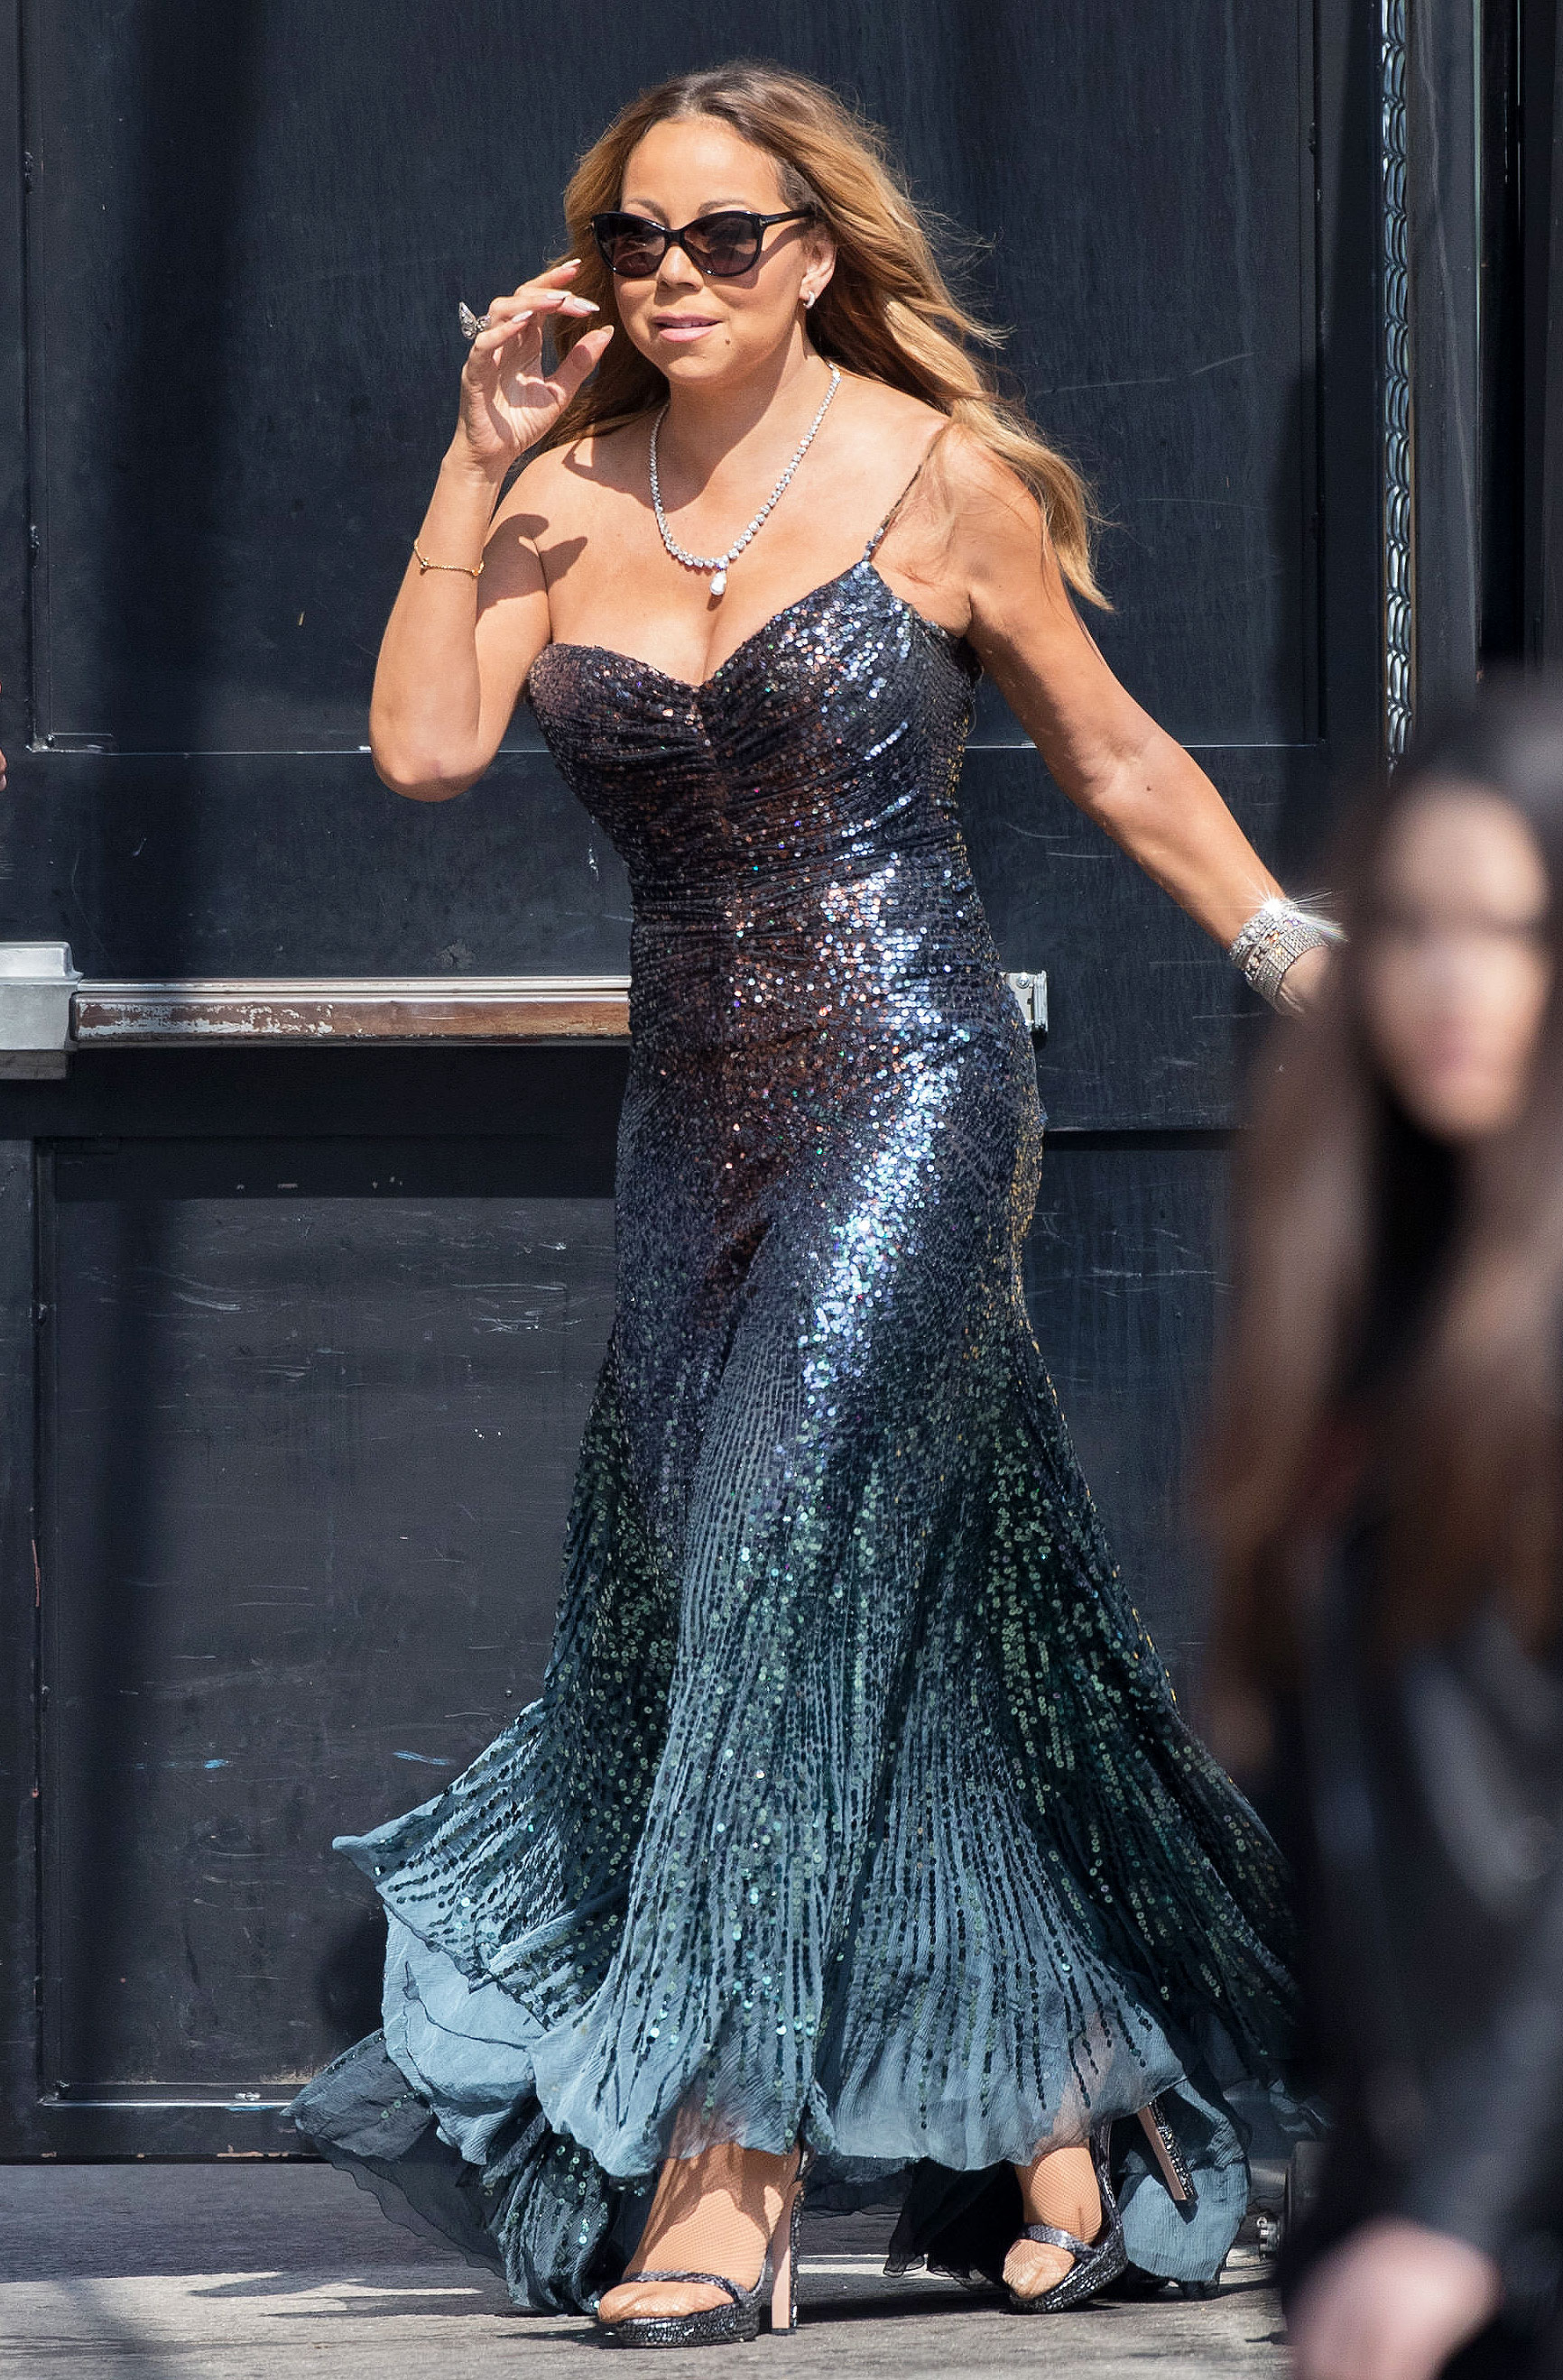 Mariah Carey Wears Two Evening Gowns in Broad Daylight: Street Style